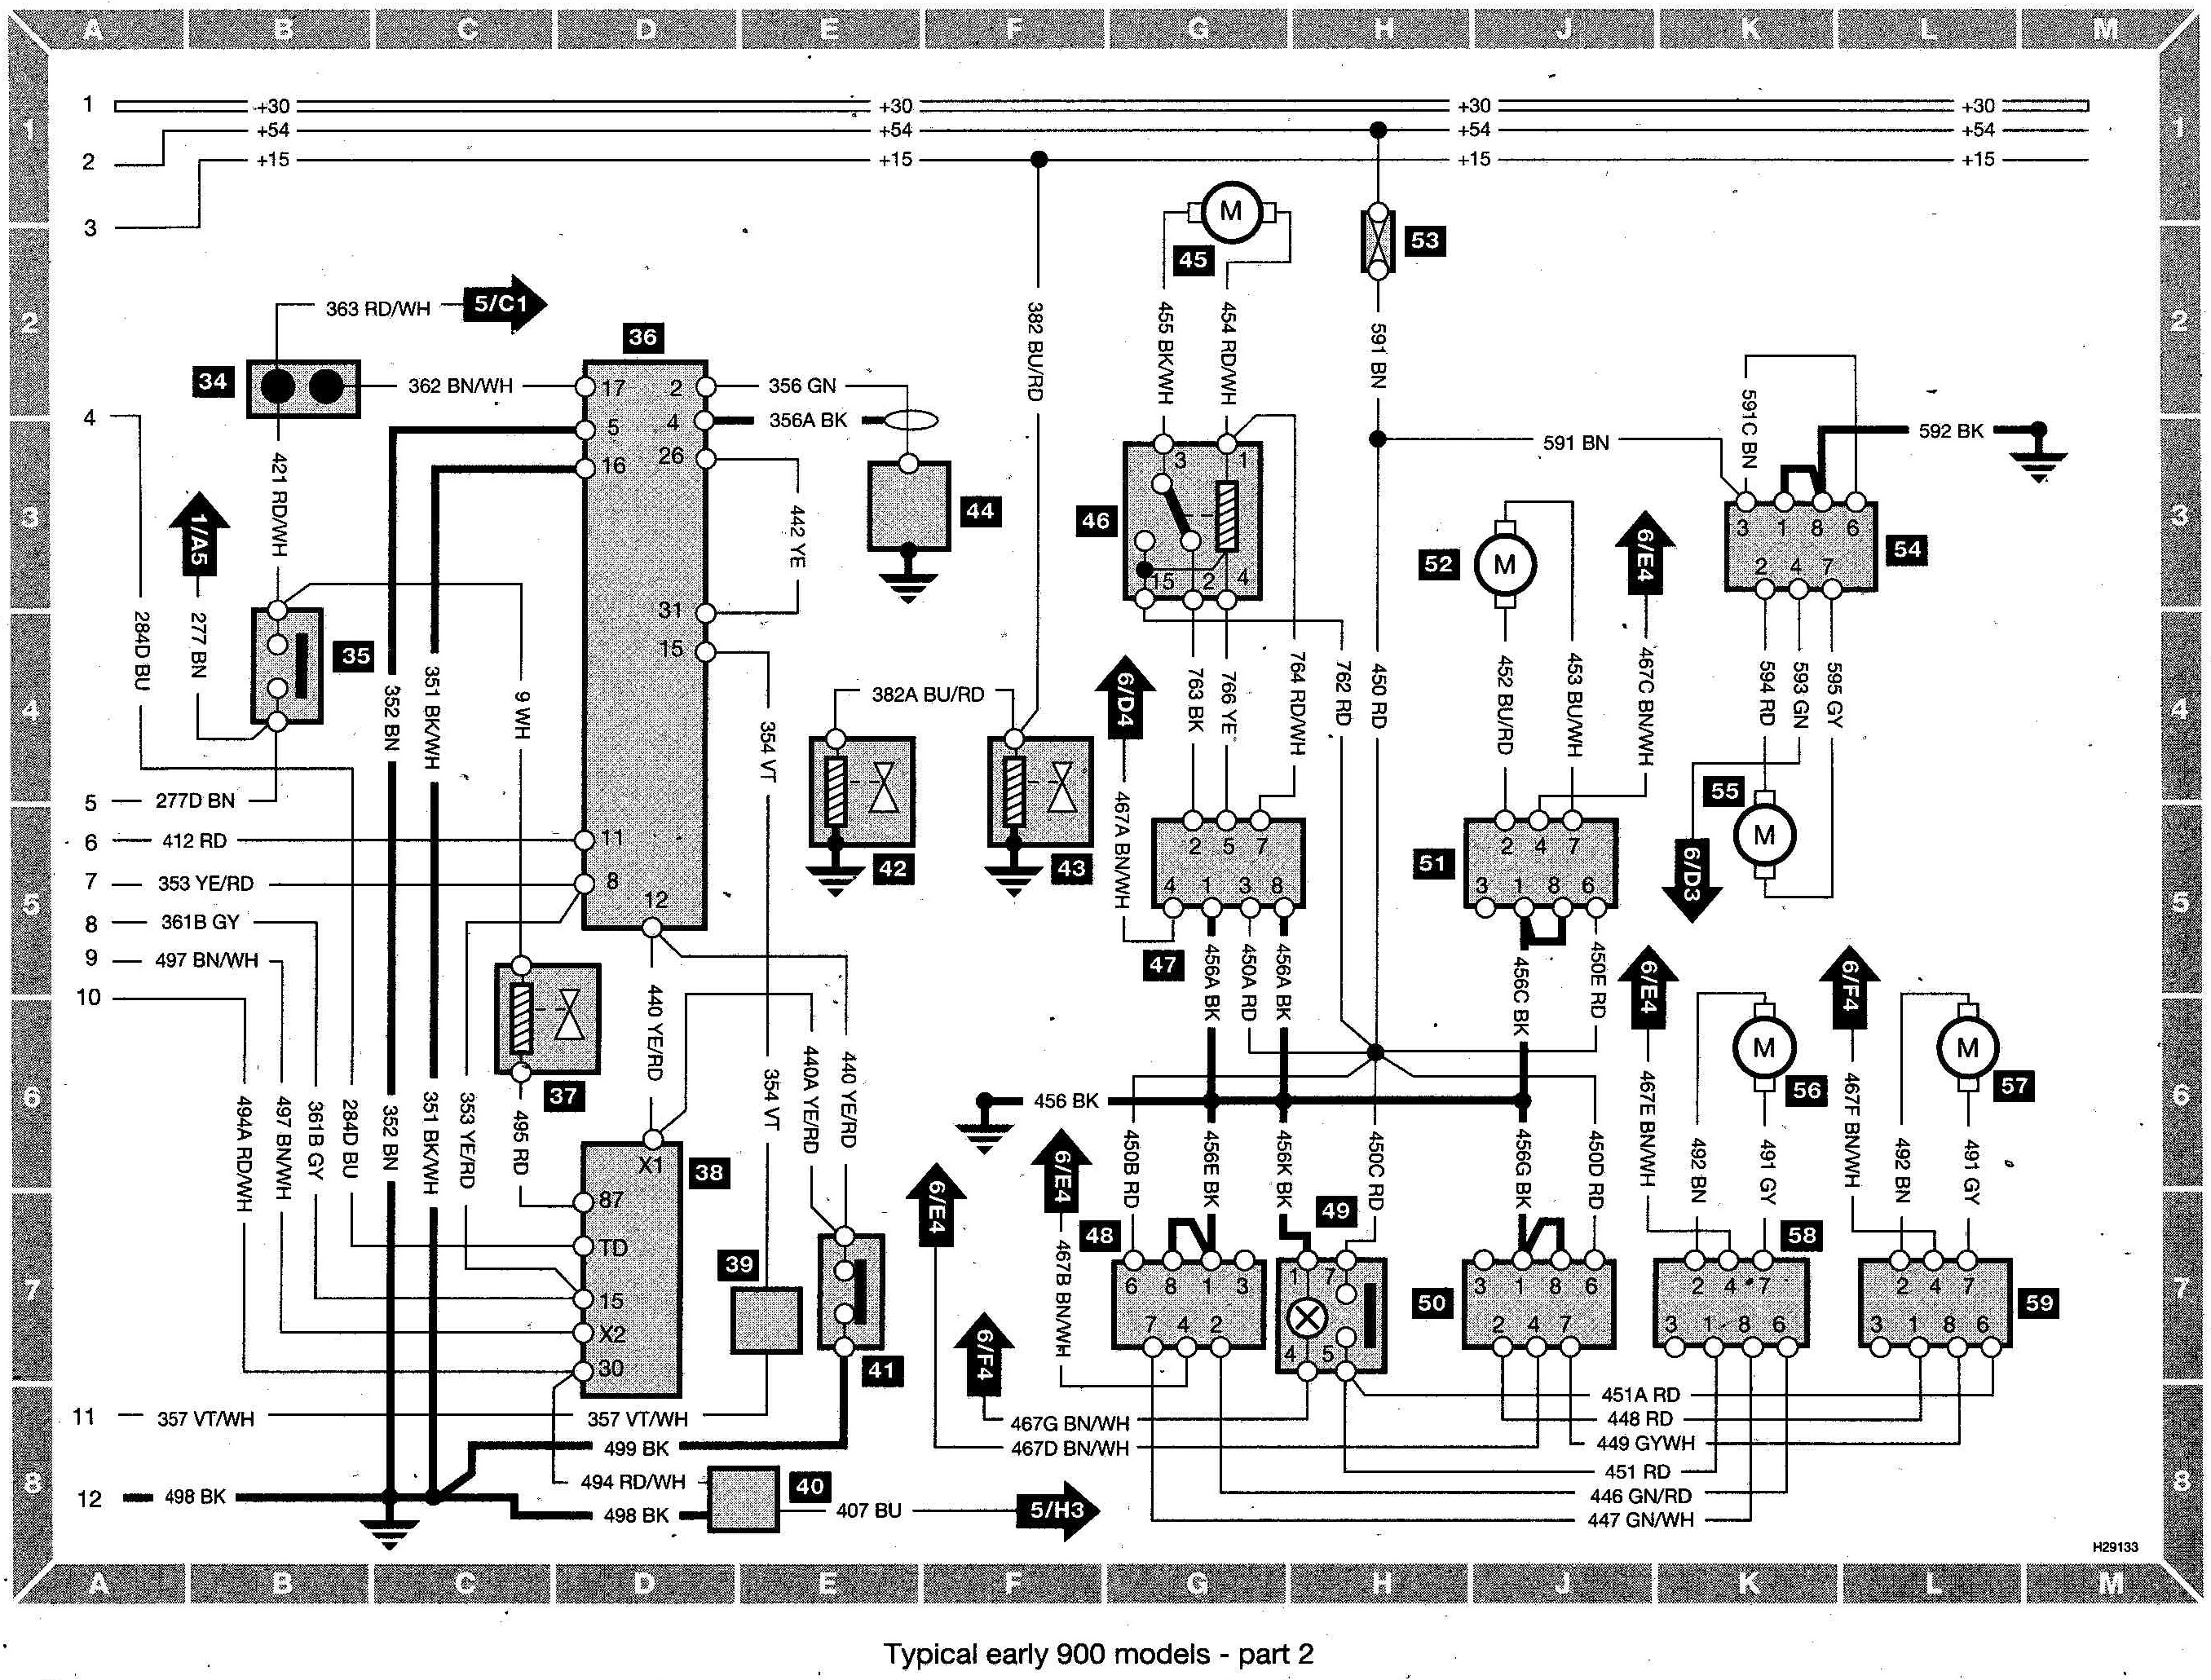 Saab 9 5 Wiring Diagram on 2004 saab 9 3 convertible radio wiring